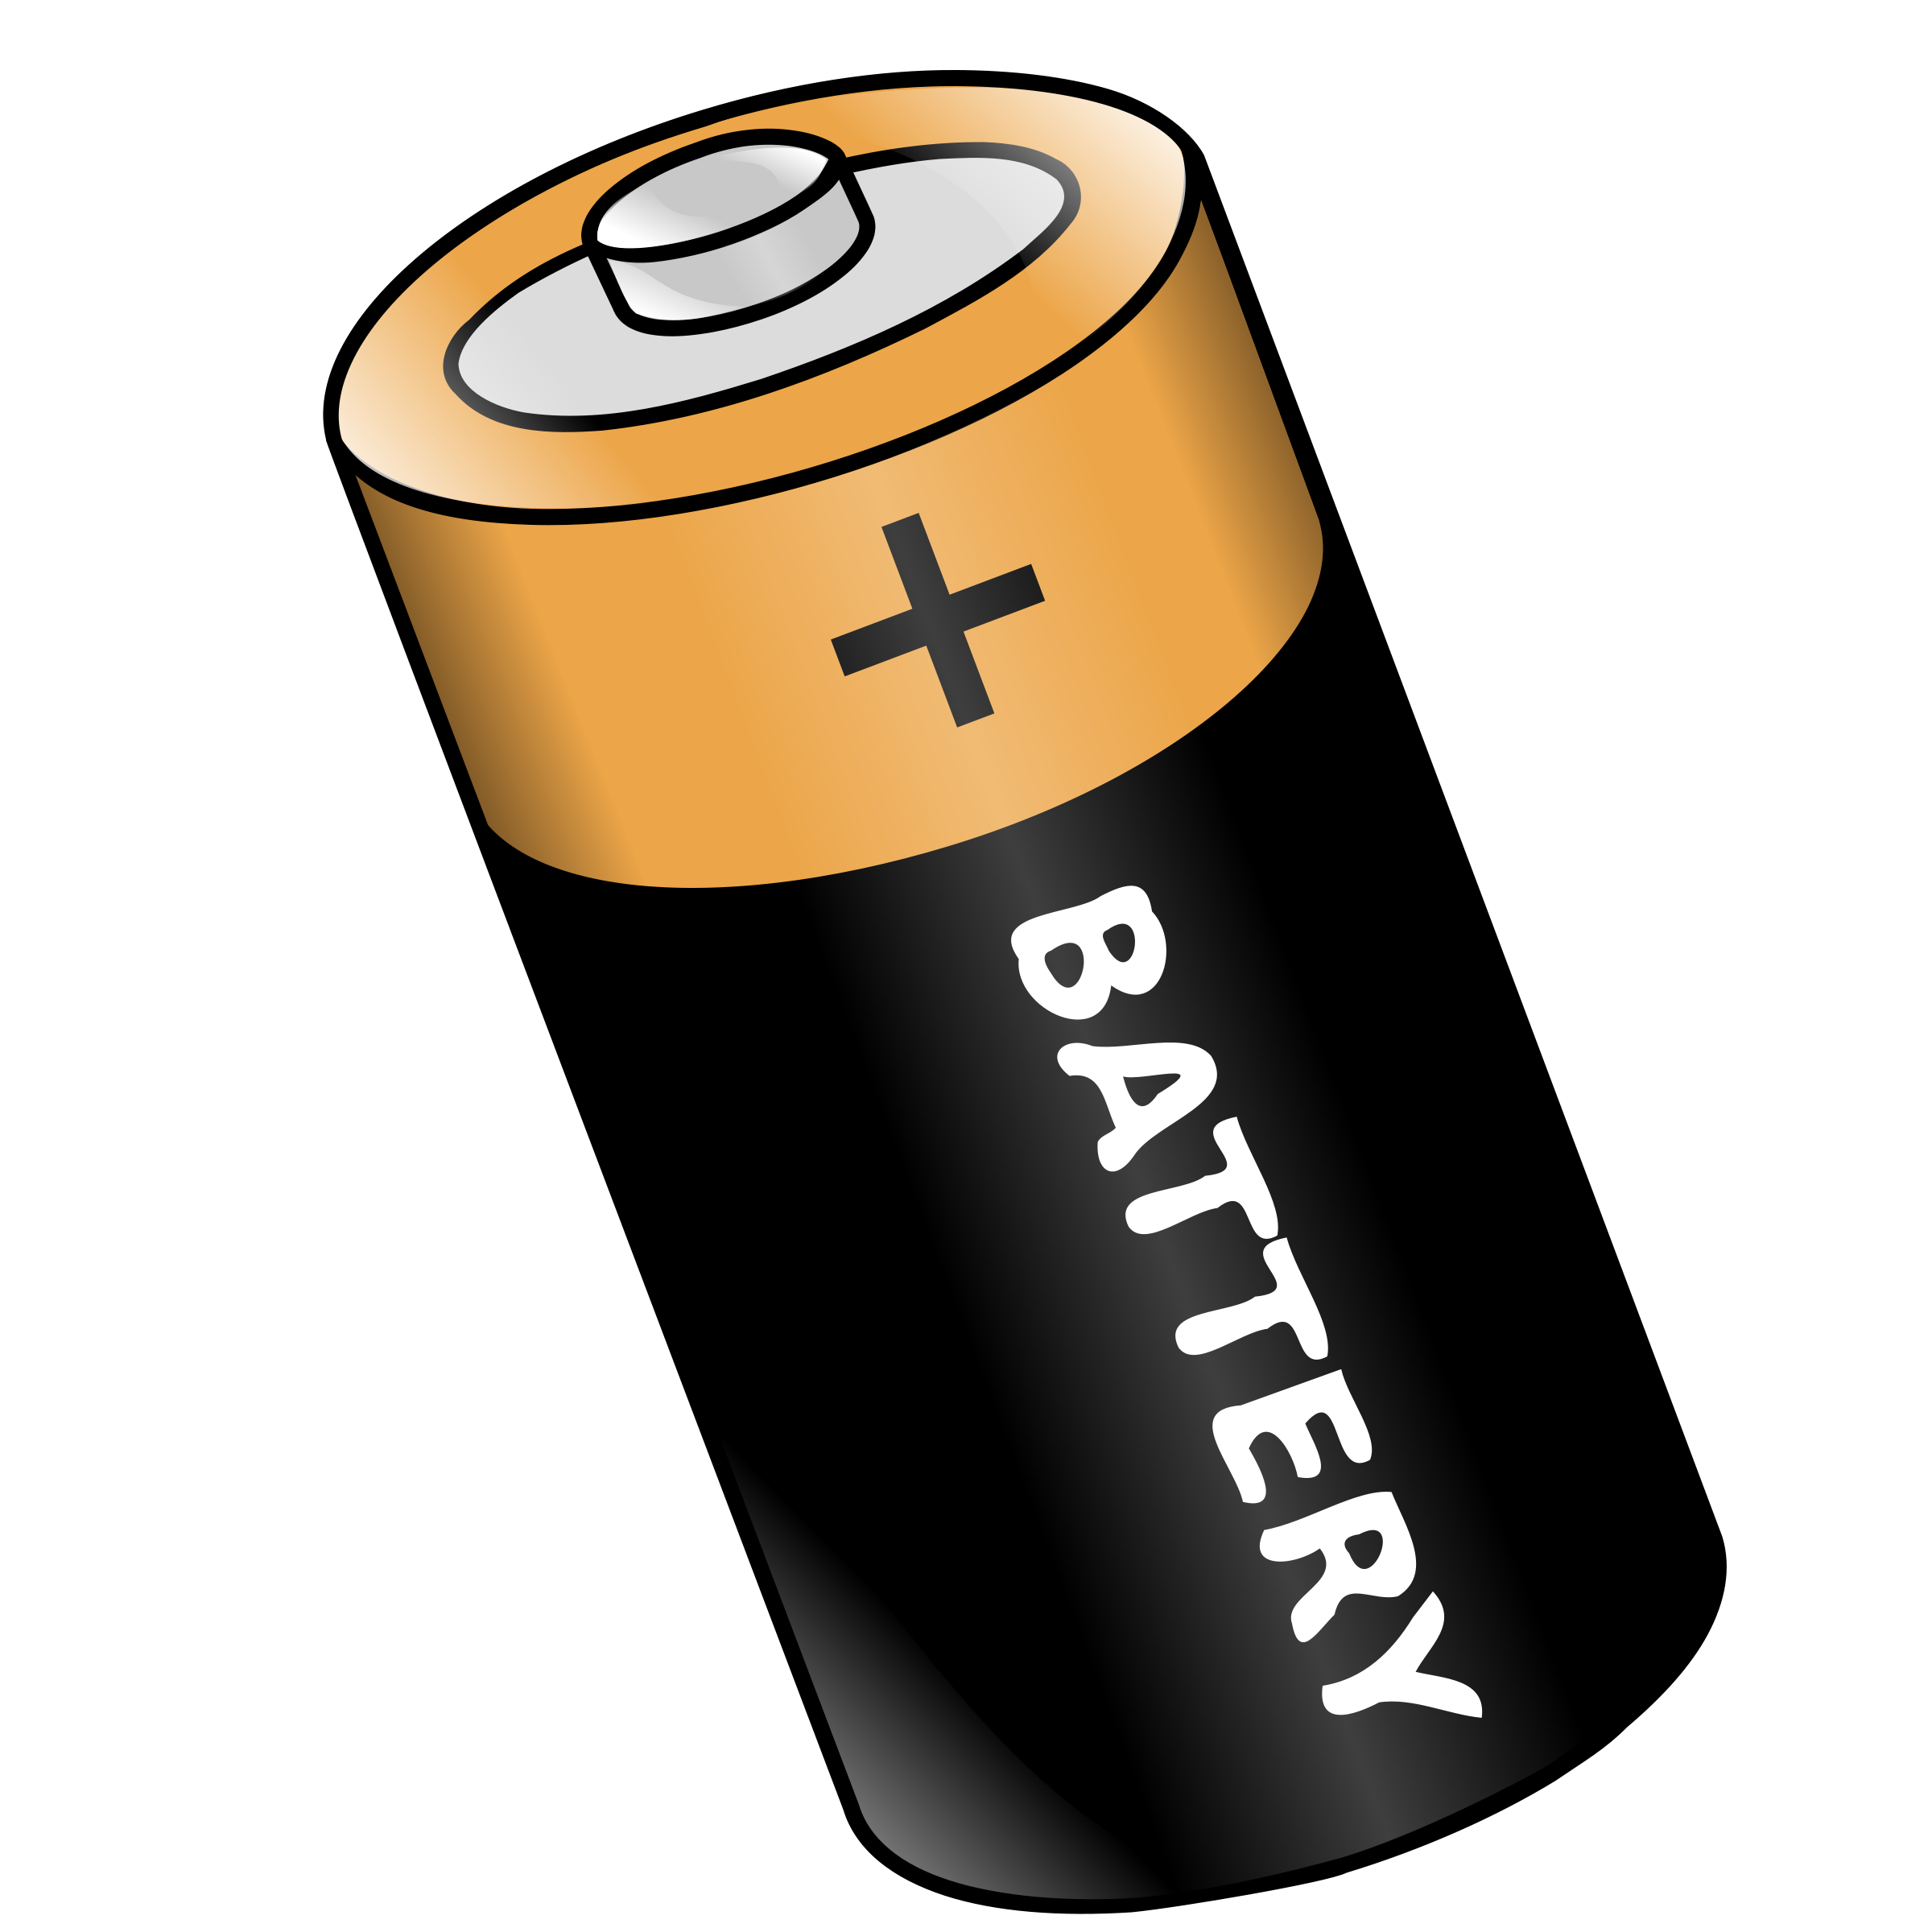 9 volt battery clip art at vector clip art.